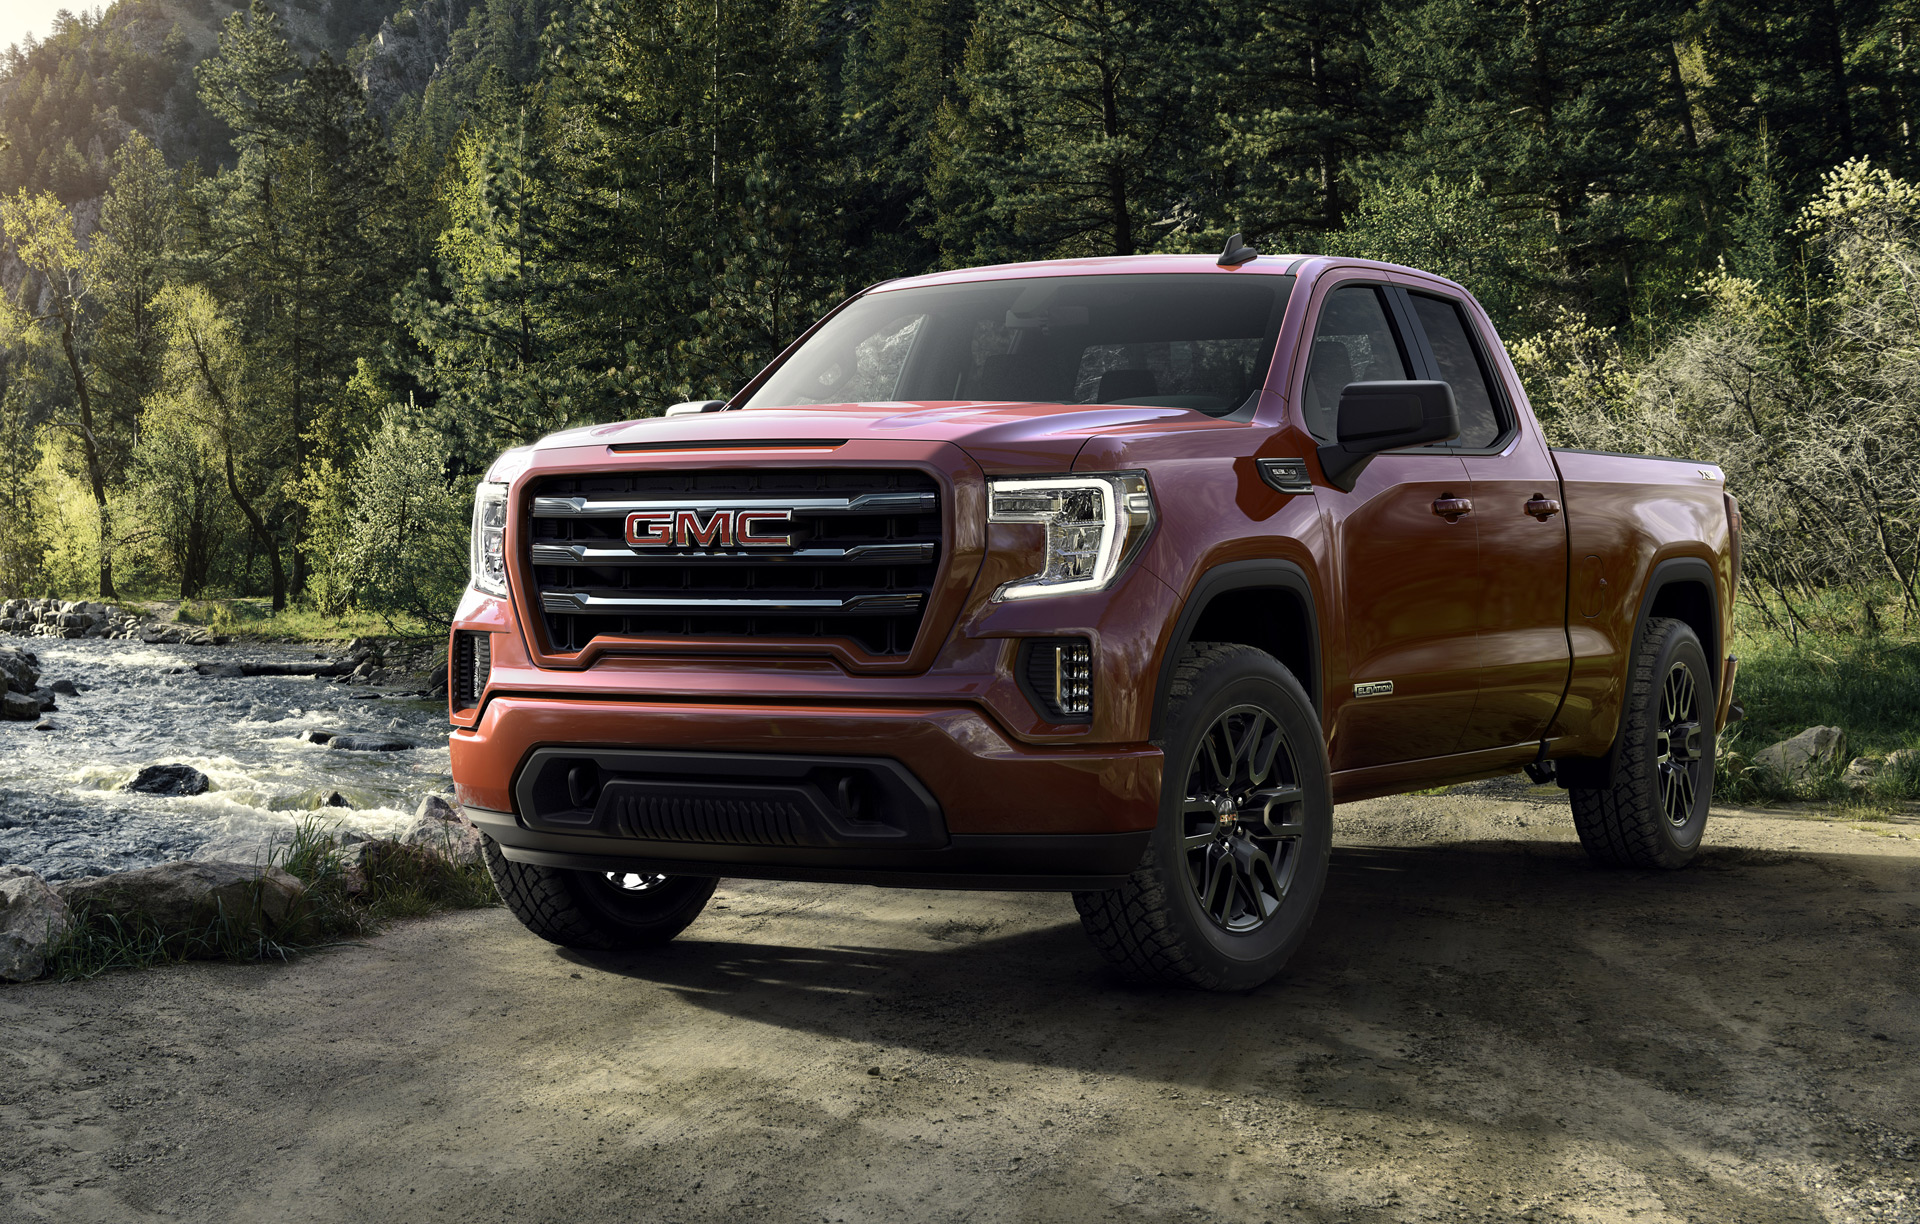 2019 Gmc Sierra 1500 Elevation Lifts Style Of Full Size Pickup